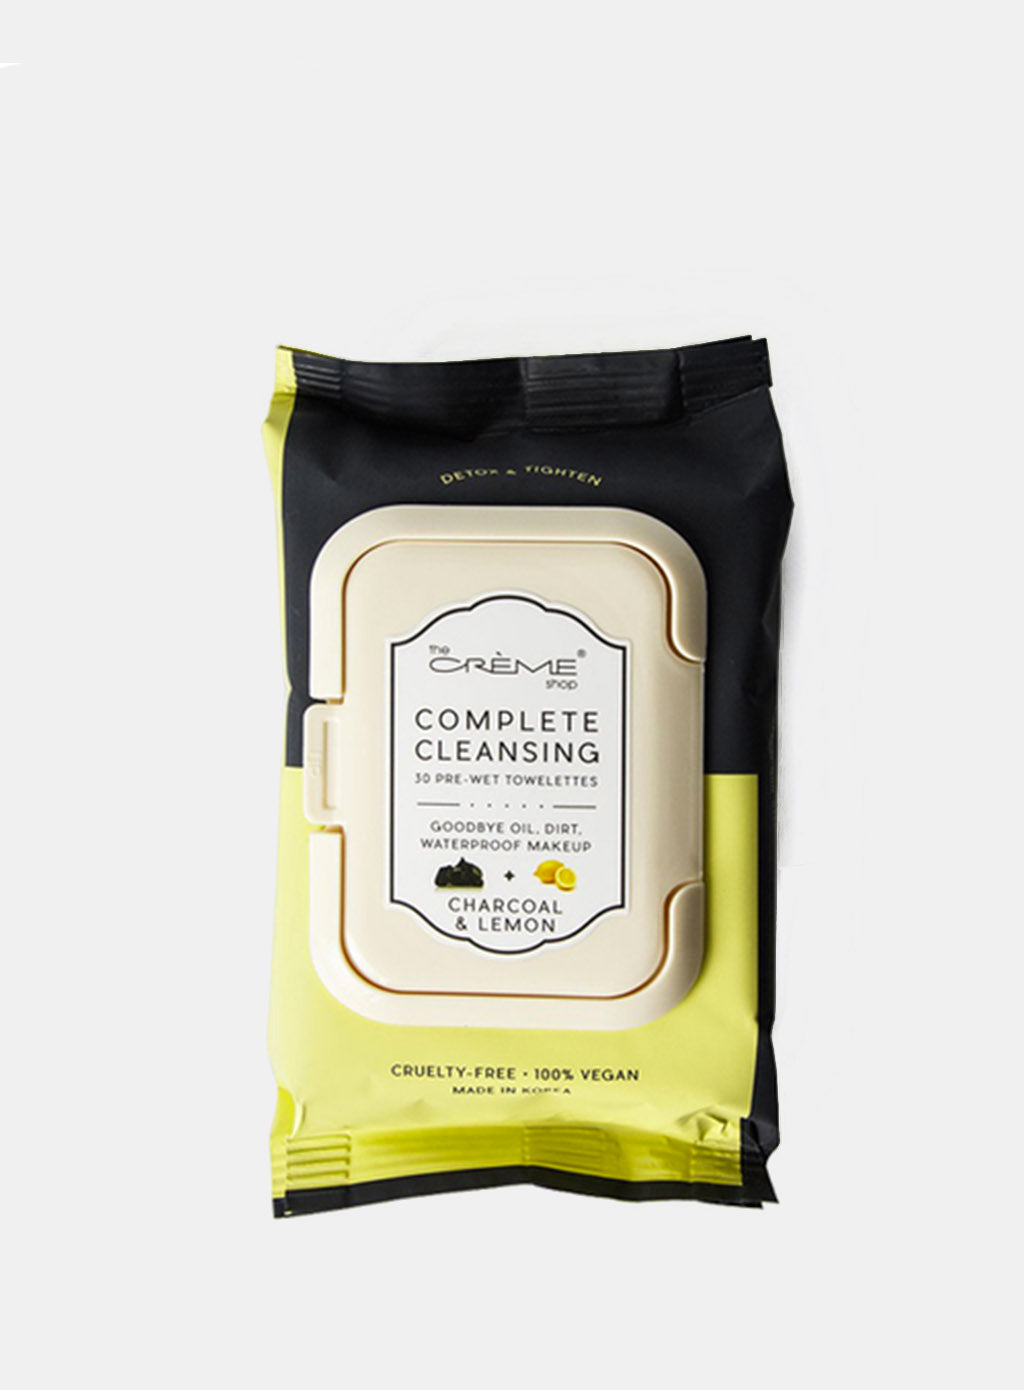 The Creme Shop Complete Cleansing Towelettes 30 Count - Charcoal & Lemon